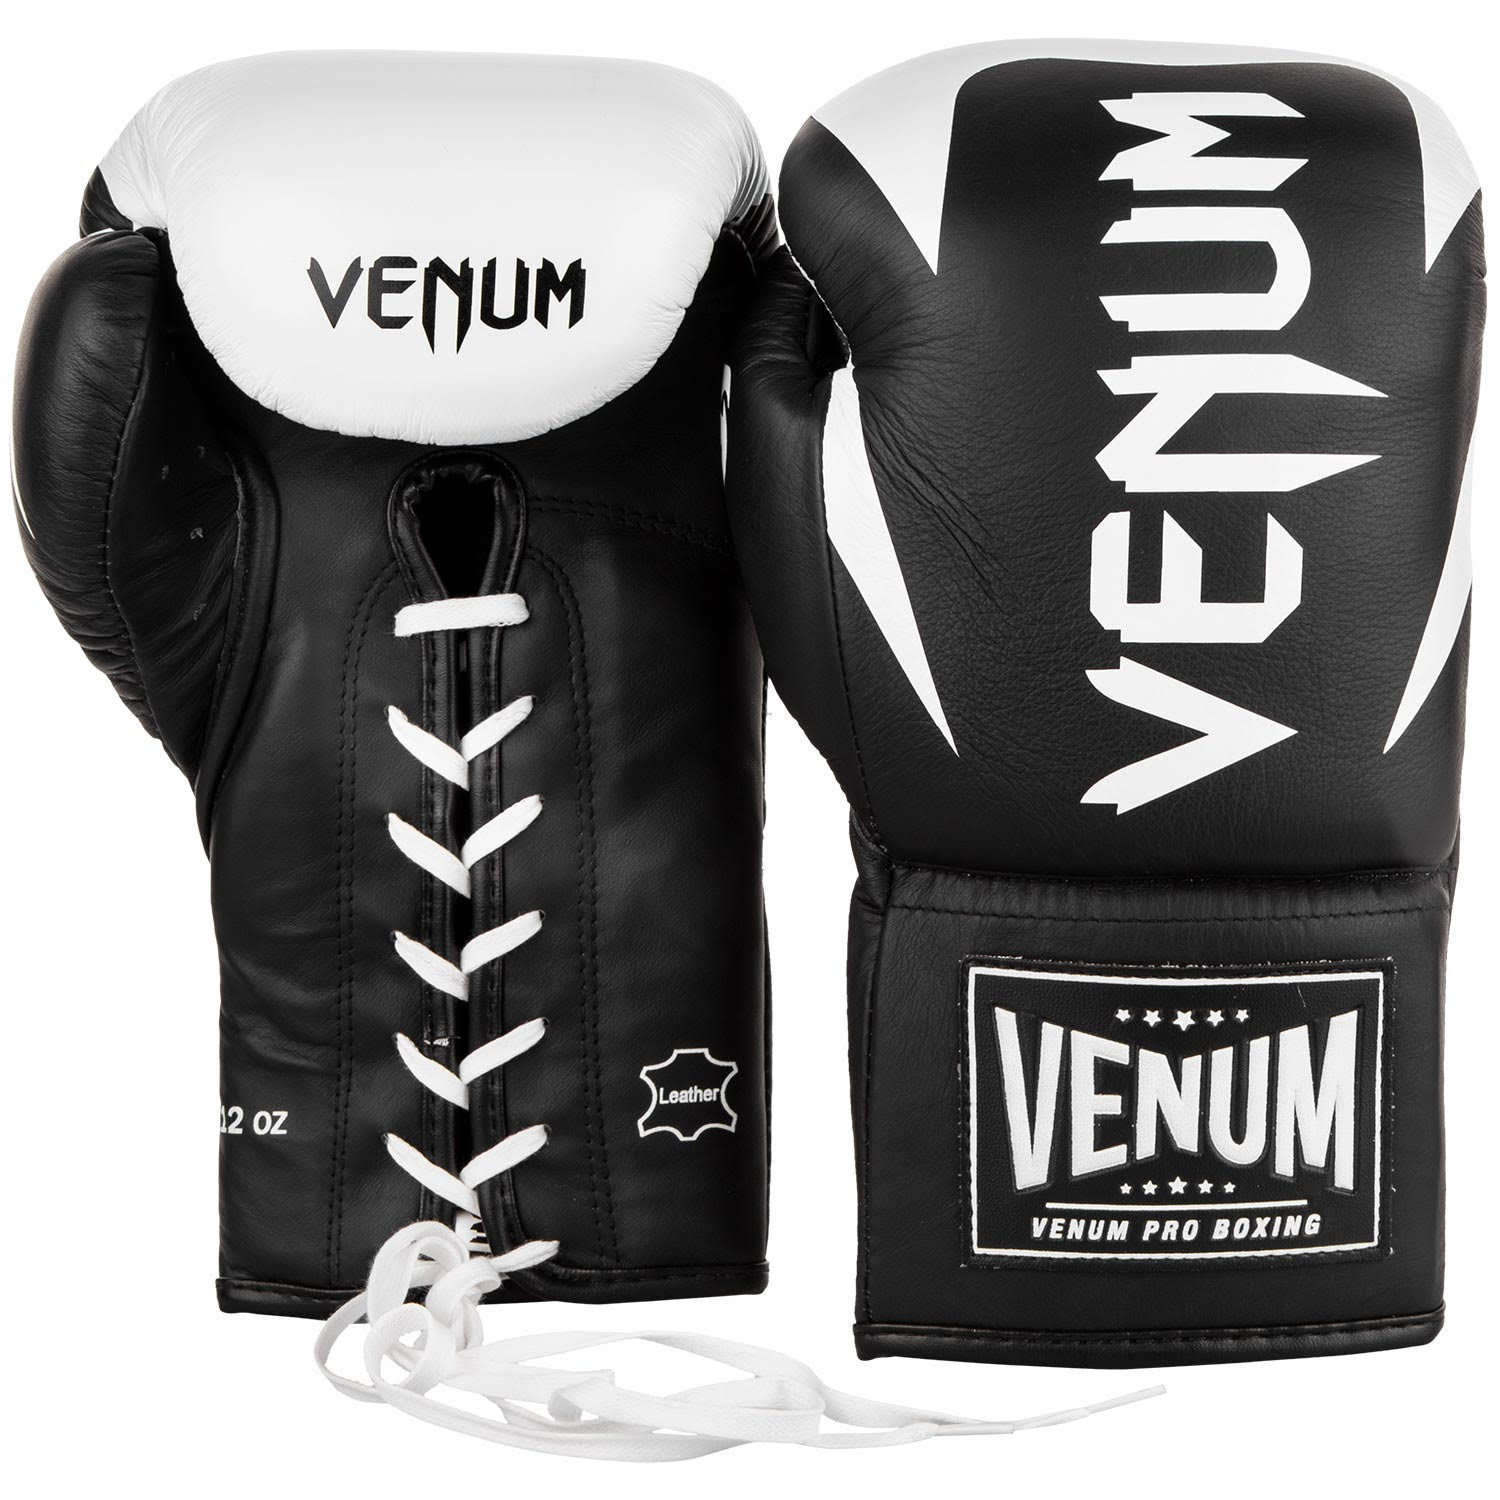 Details about venum hammer pro lace up leather boxing gloves black white